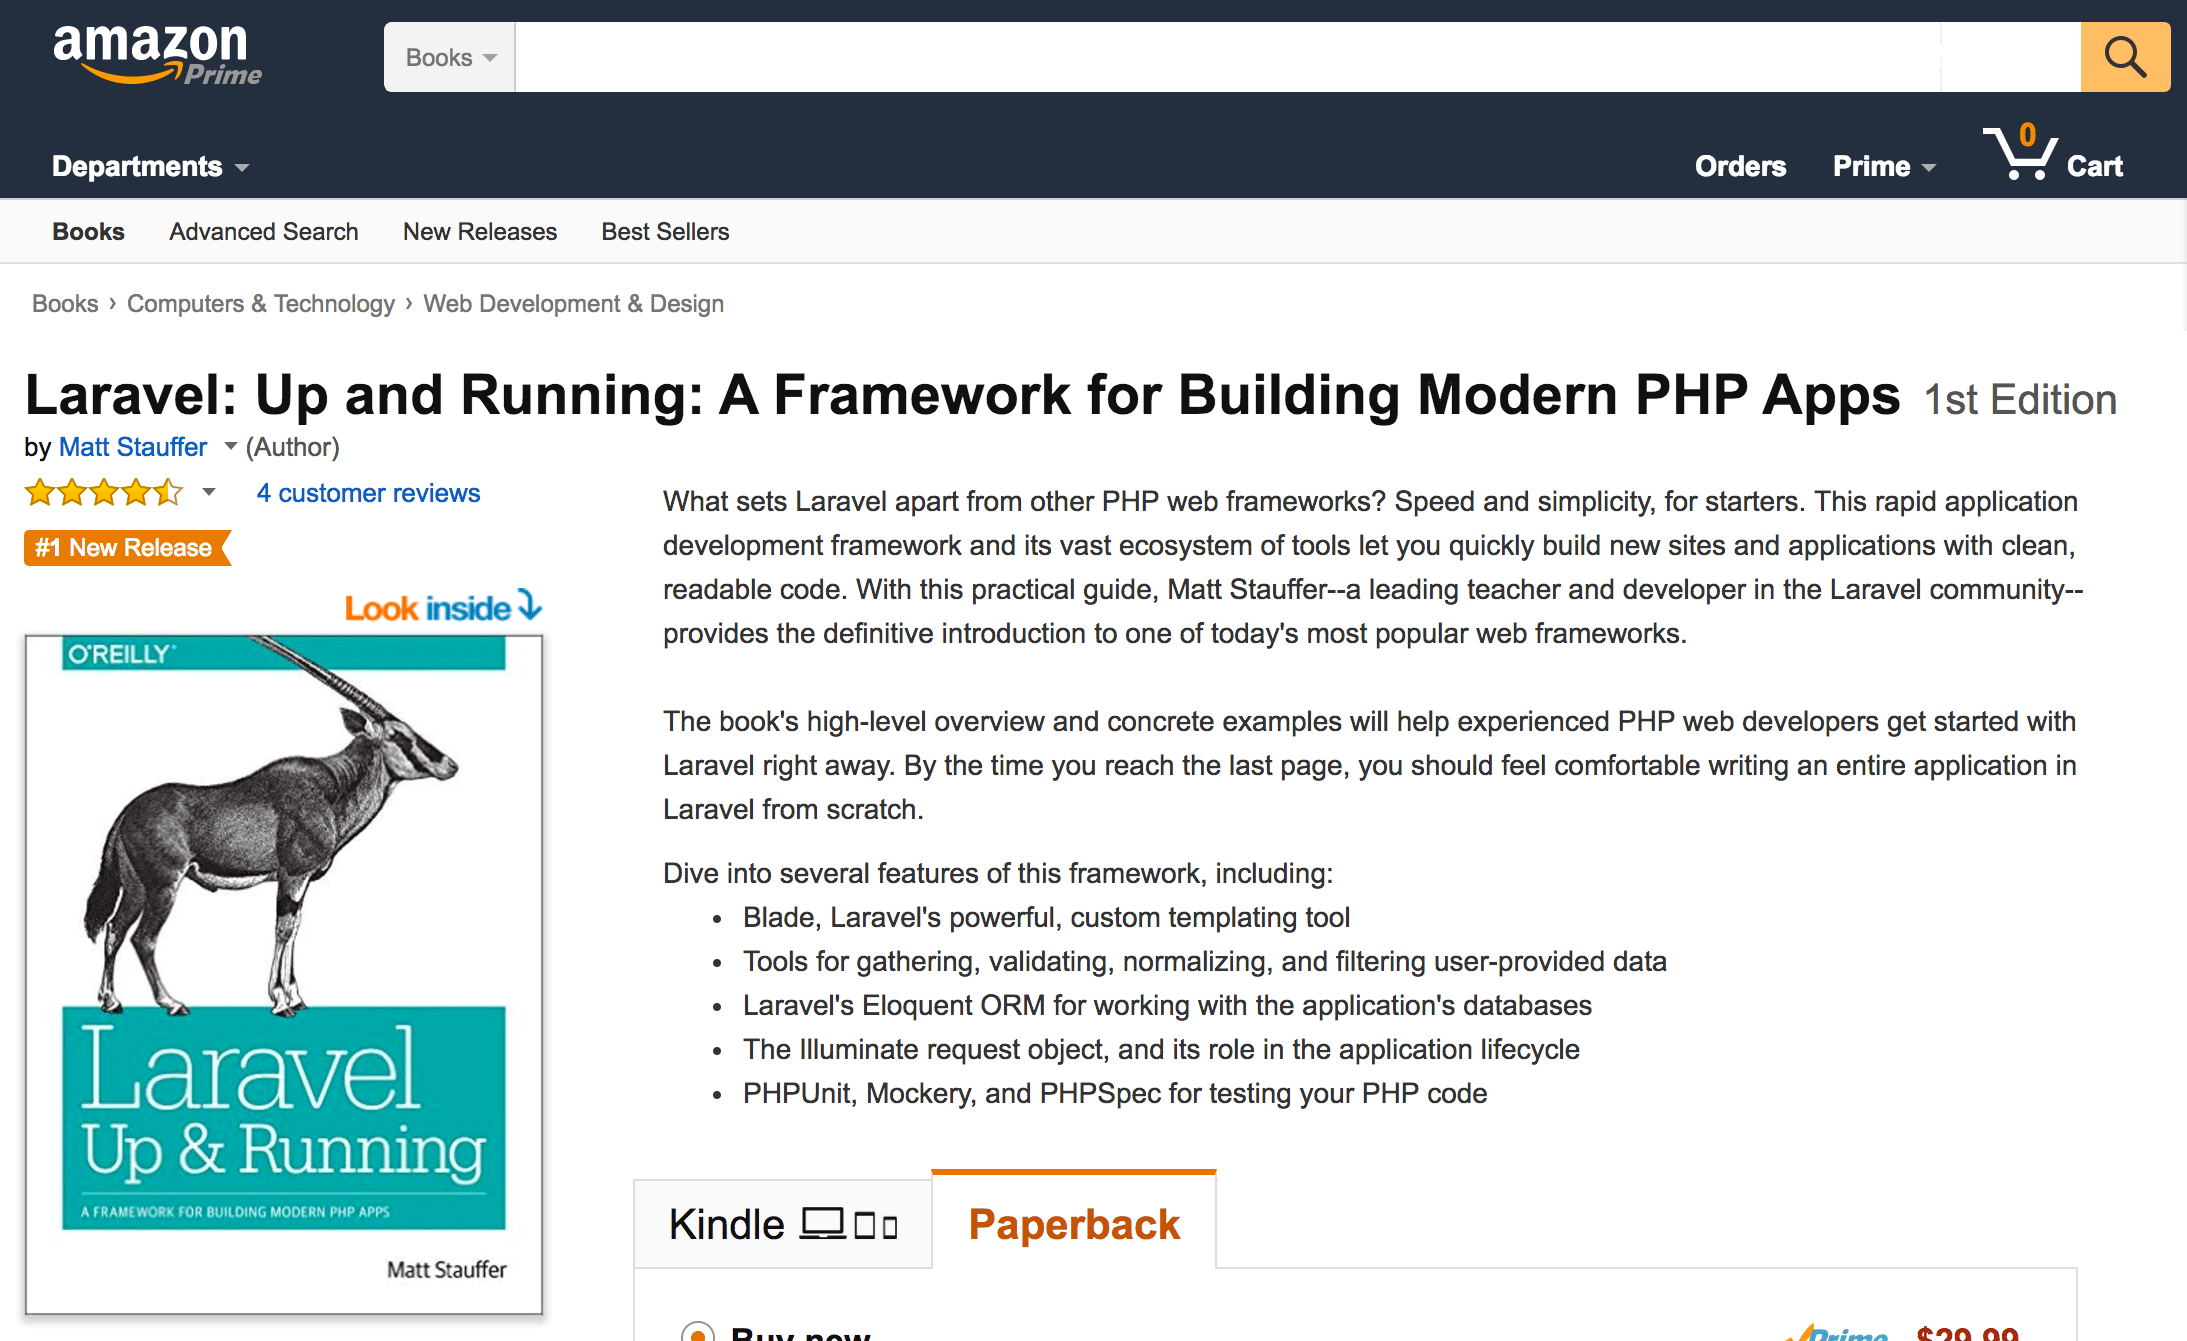 Laravel: Up & Running is launched and available for order